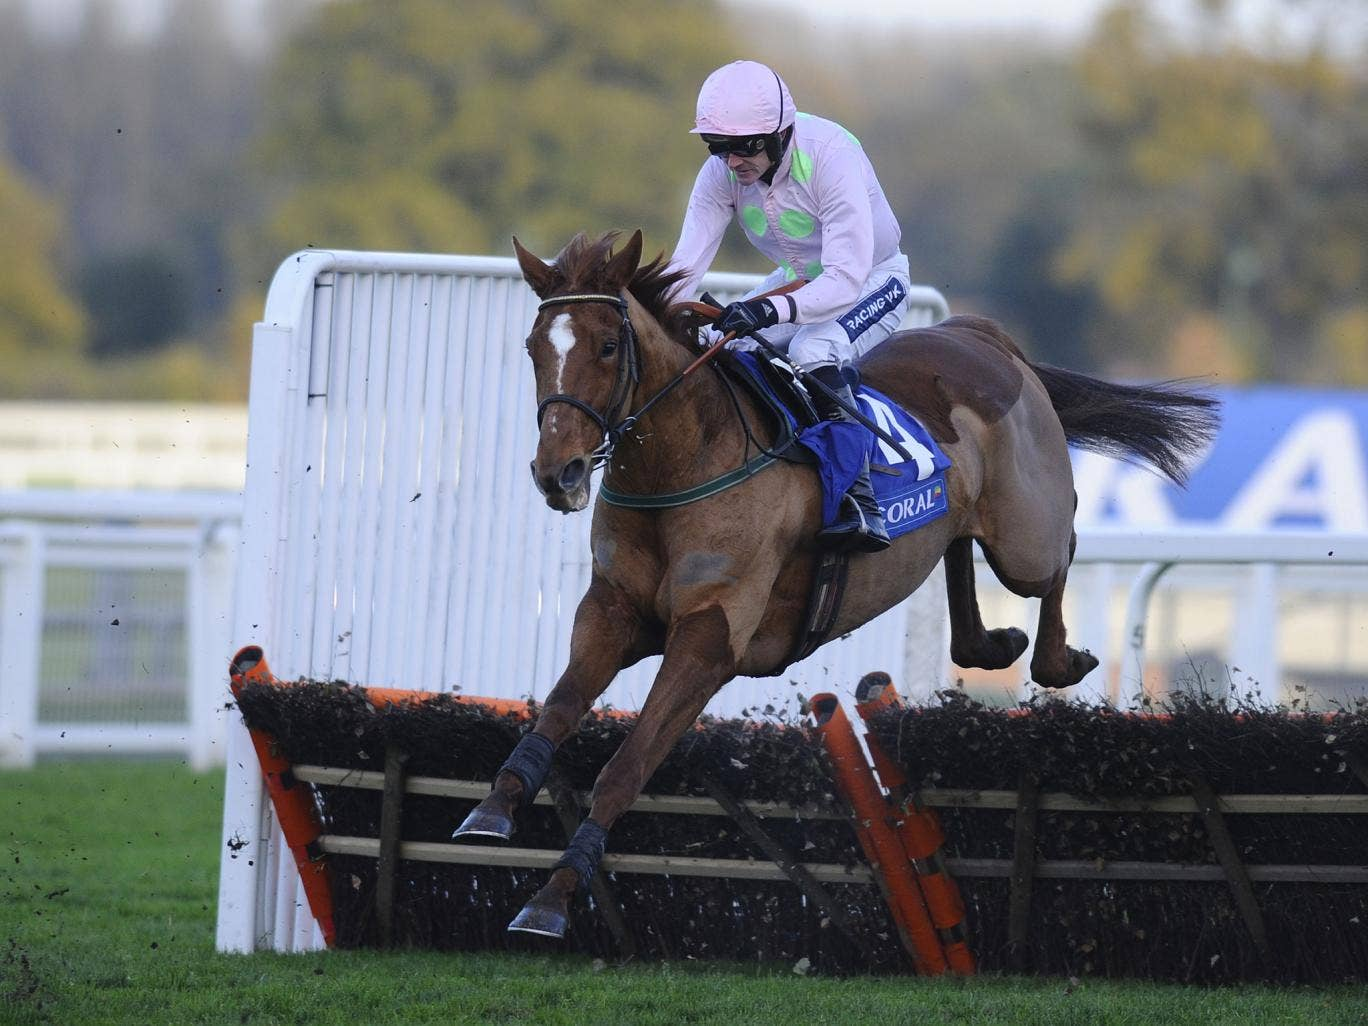 Irish trainer Willie Mullins must choose between several Festival targets for Annie Power, pictured